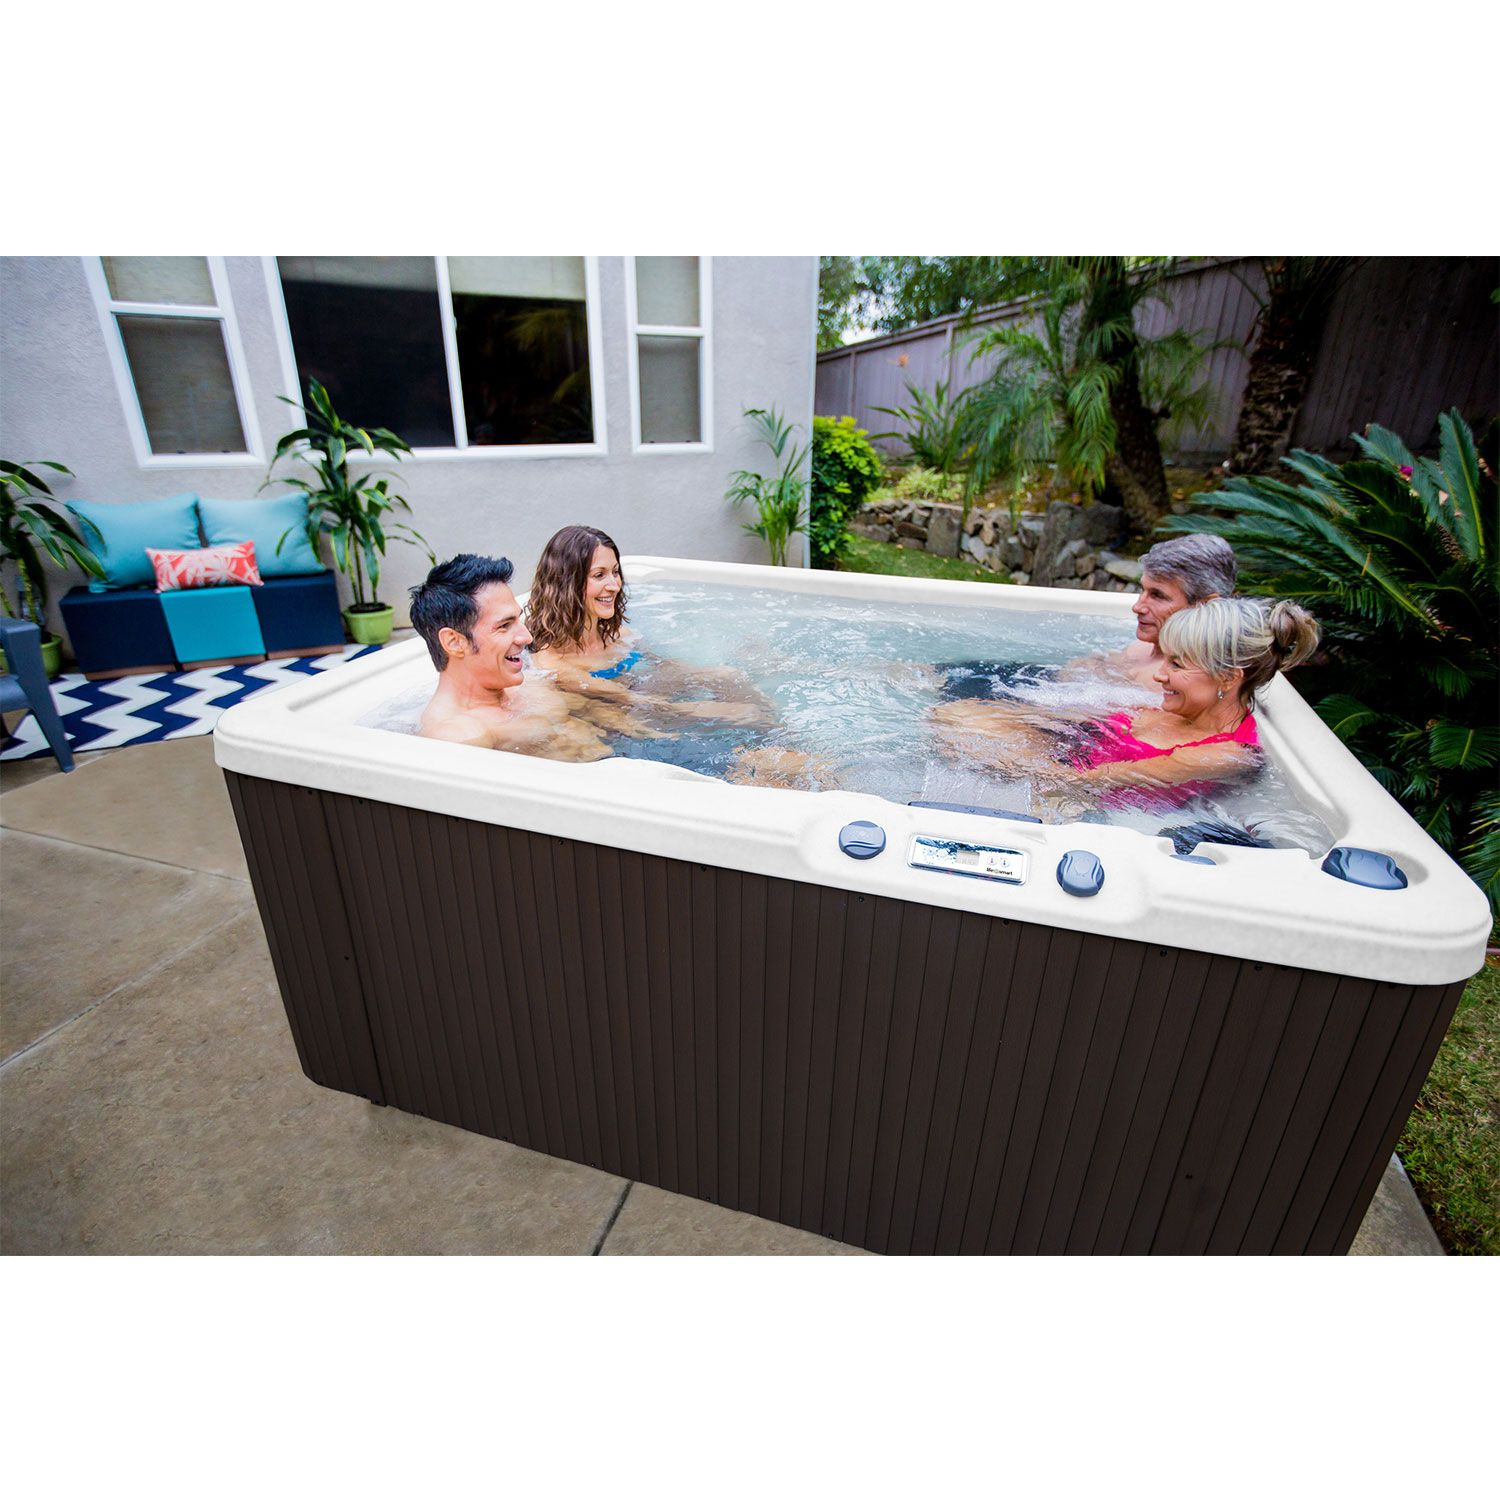 LIFESMART SPAS LS350 Plus 5 Person 28-Jet Spa